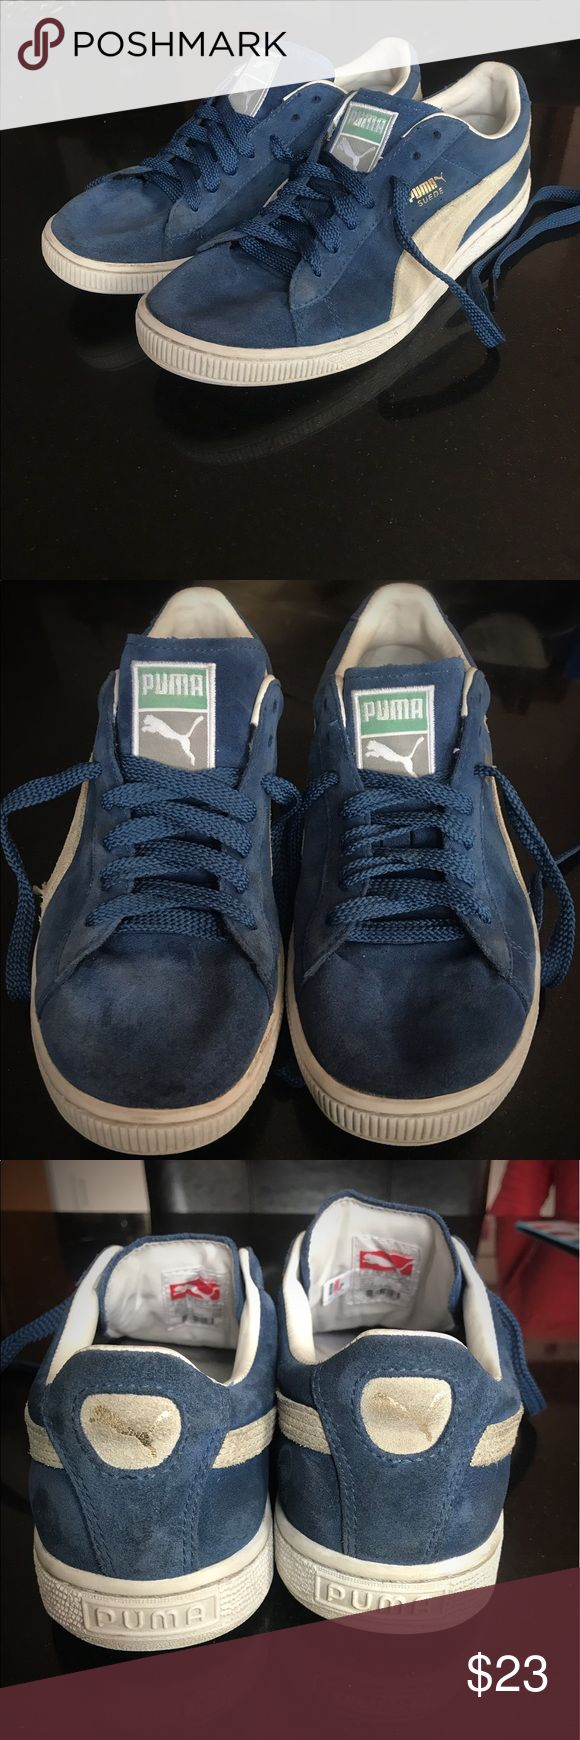 Details about puma womens suede classic rg black running shoes - Puma Suede Blue